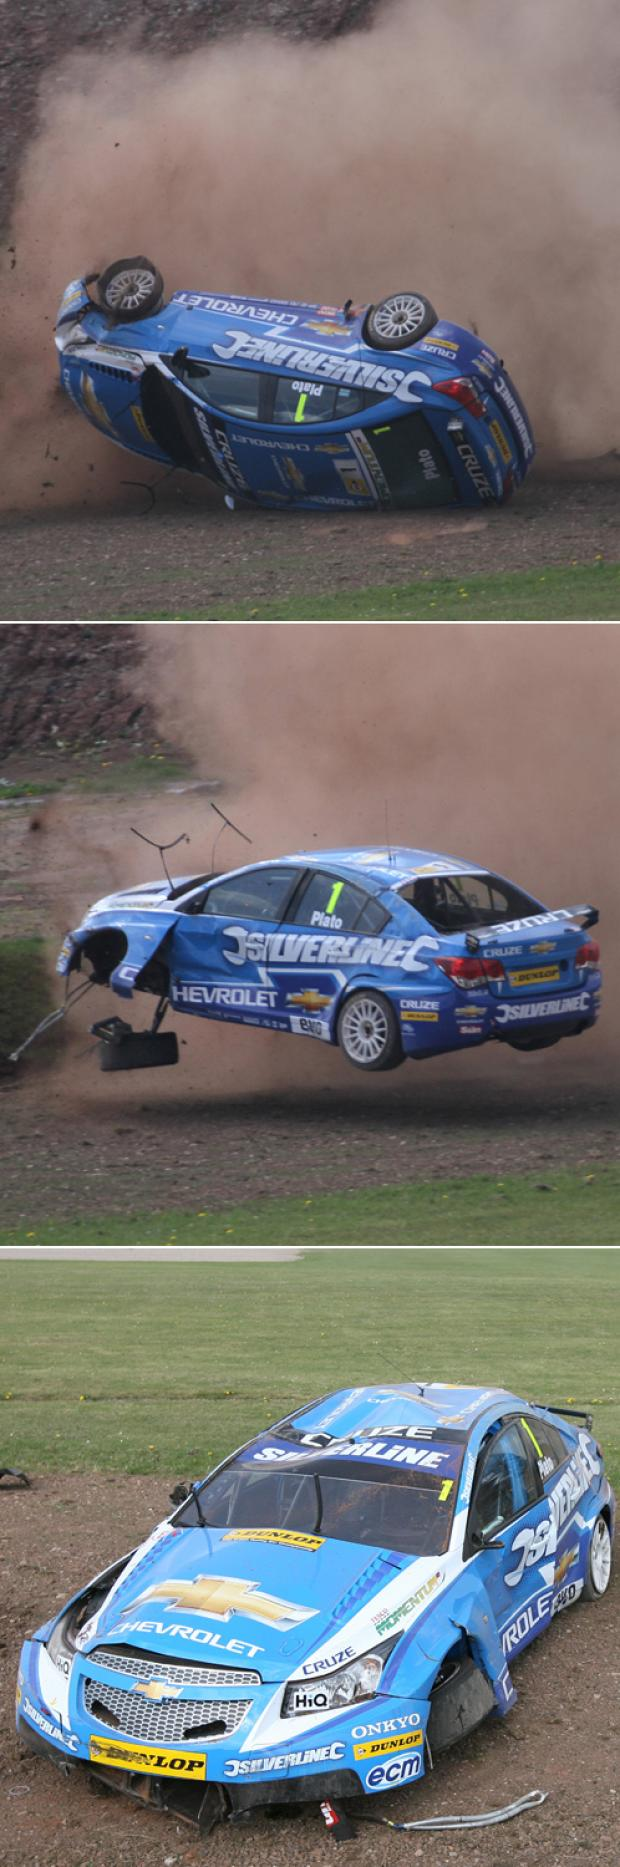 GETTING AWAY WITH IT: Plato comes to grief in Race Two at Donington Park.